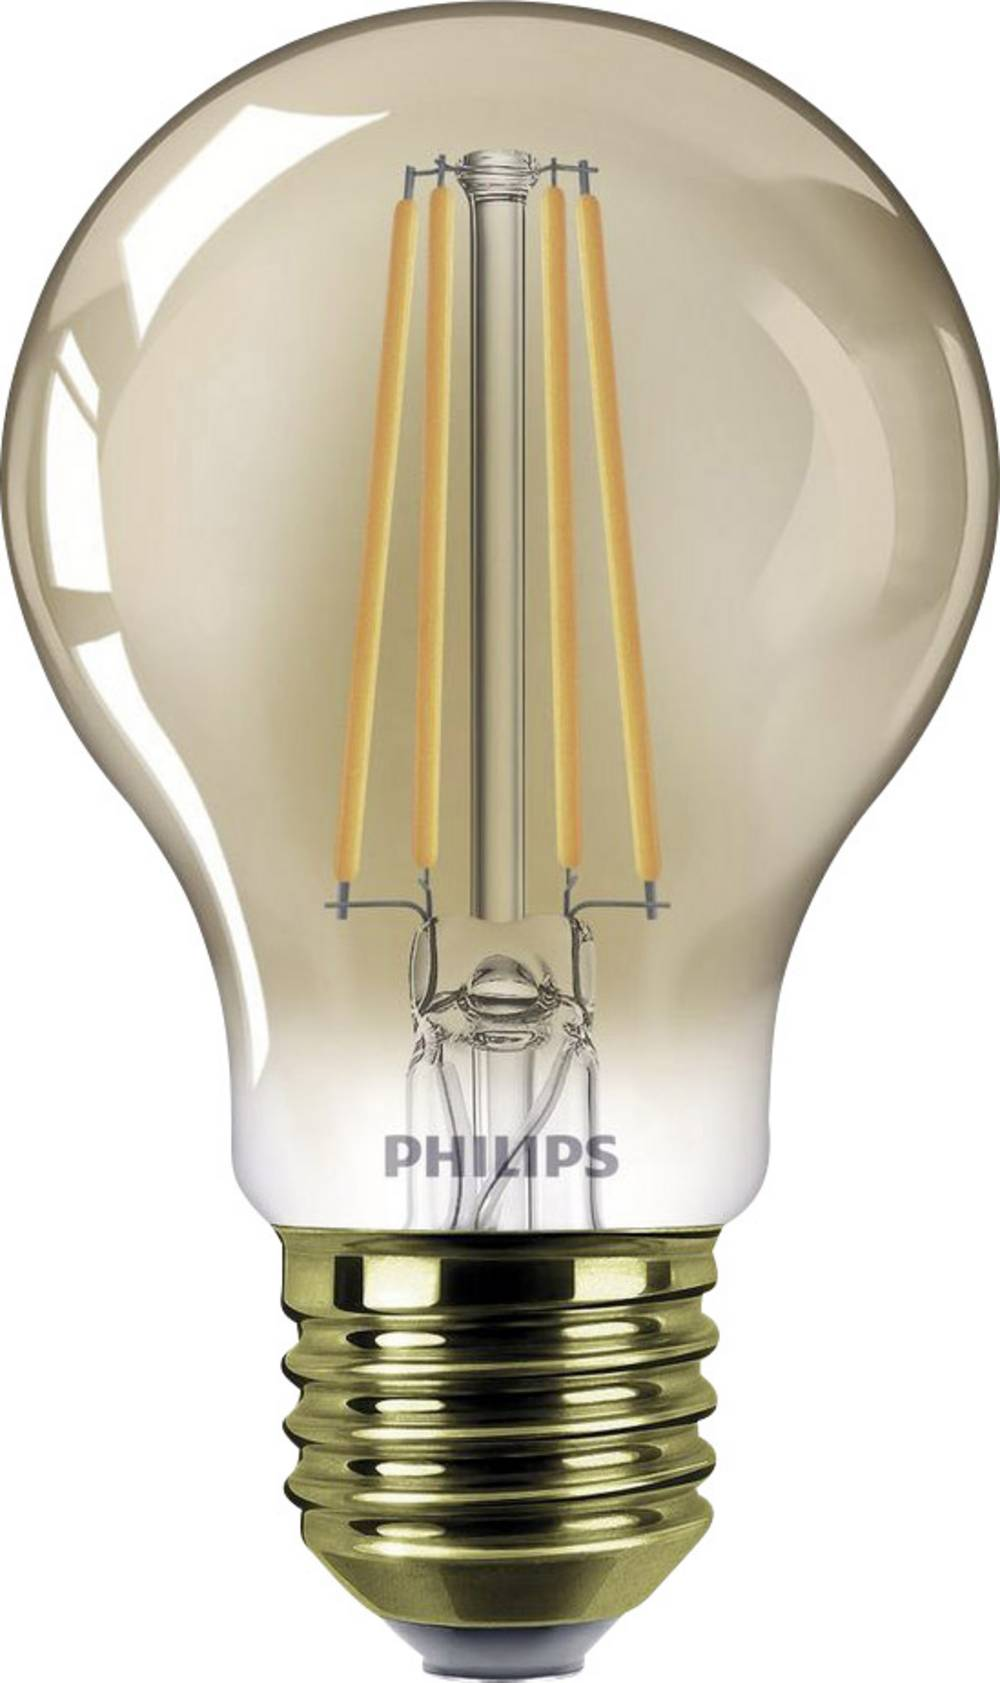 LED Glödlampsform E27 Philips Lighting Filament, dimbar 7.5 W 610 lm A+ Guld 1 st